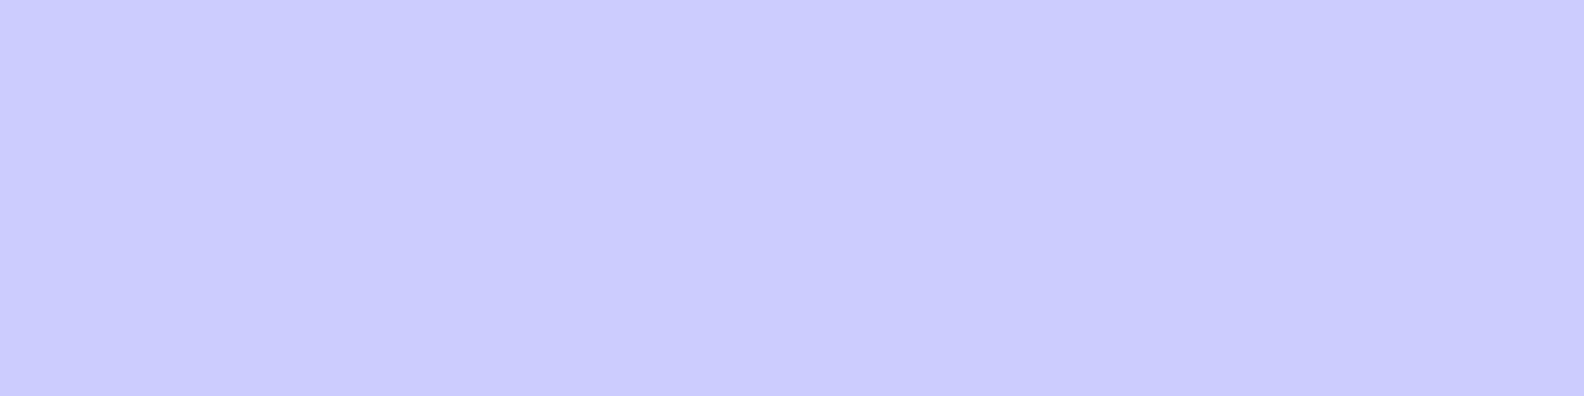 1584x396 Periwinkle Solid Color Background